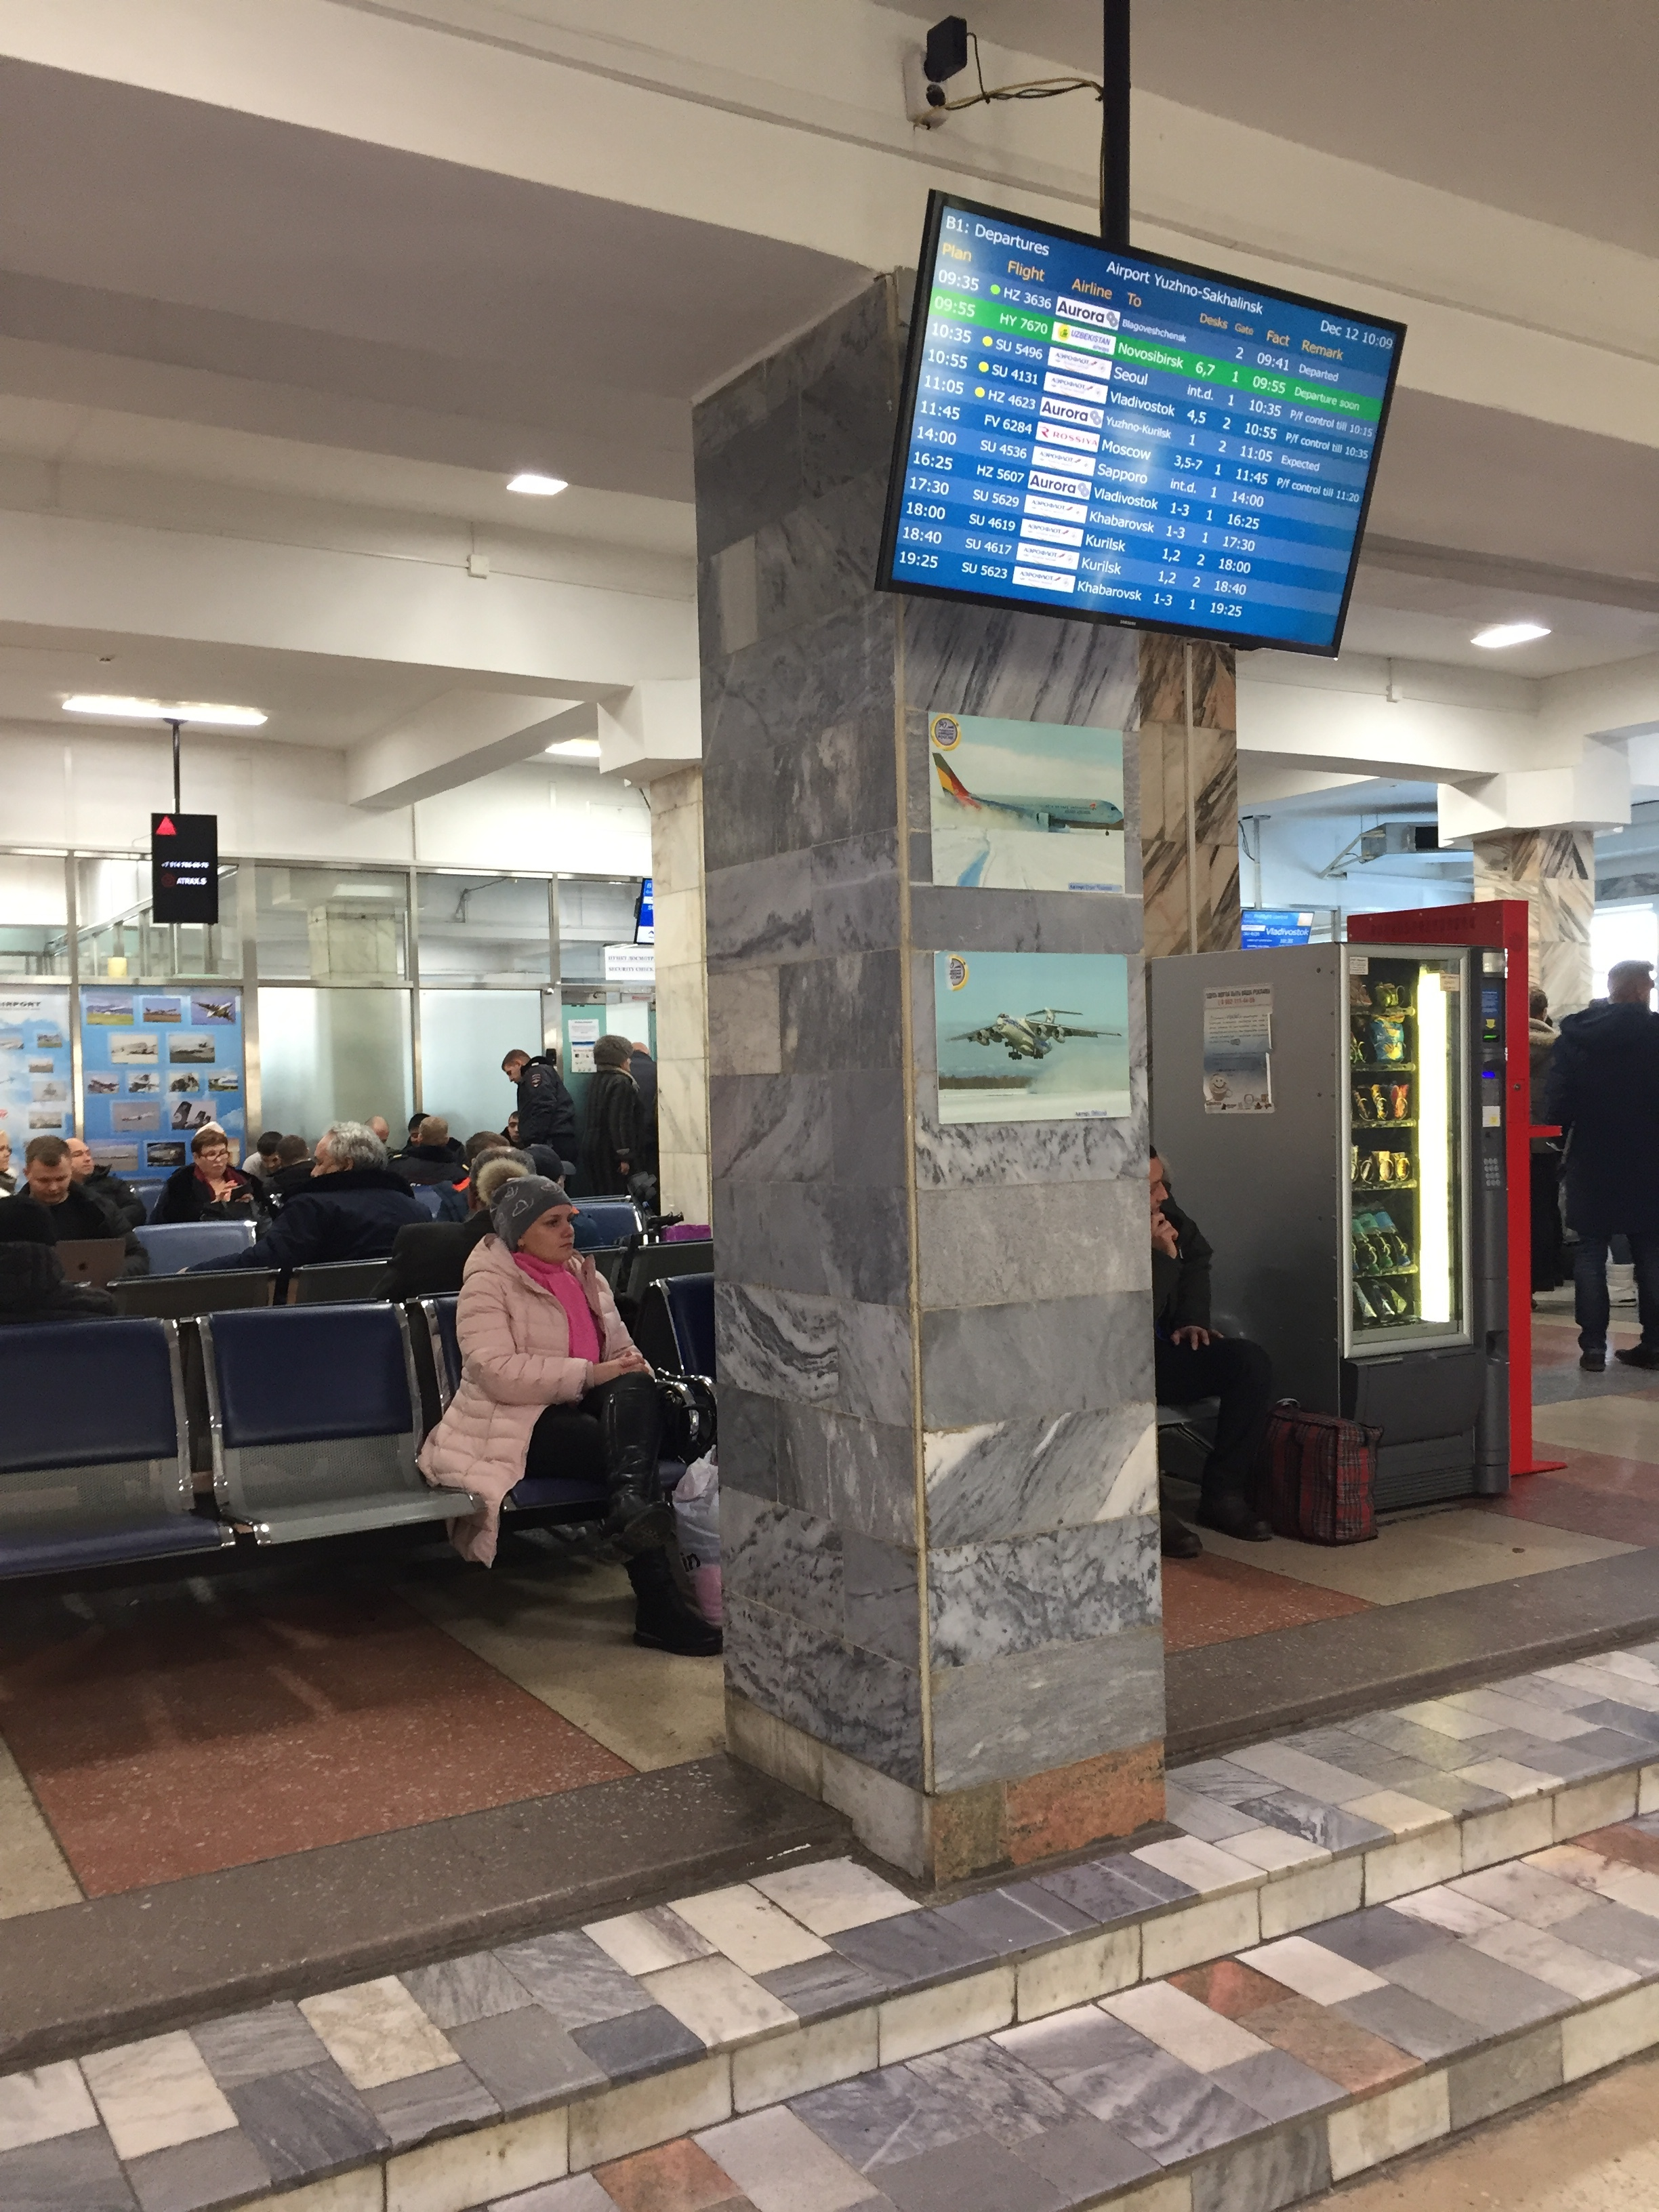 Little has changed since Soviet times inside the departures hall at Yuzhno-Sakhalinsk airport. This building will soon be replaced by a state-of-theart new terminal, though.